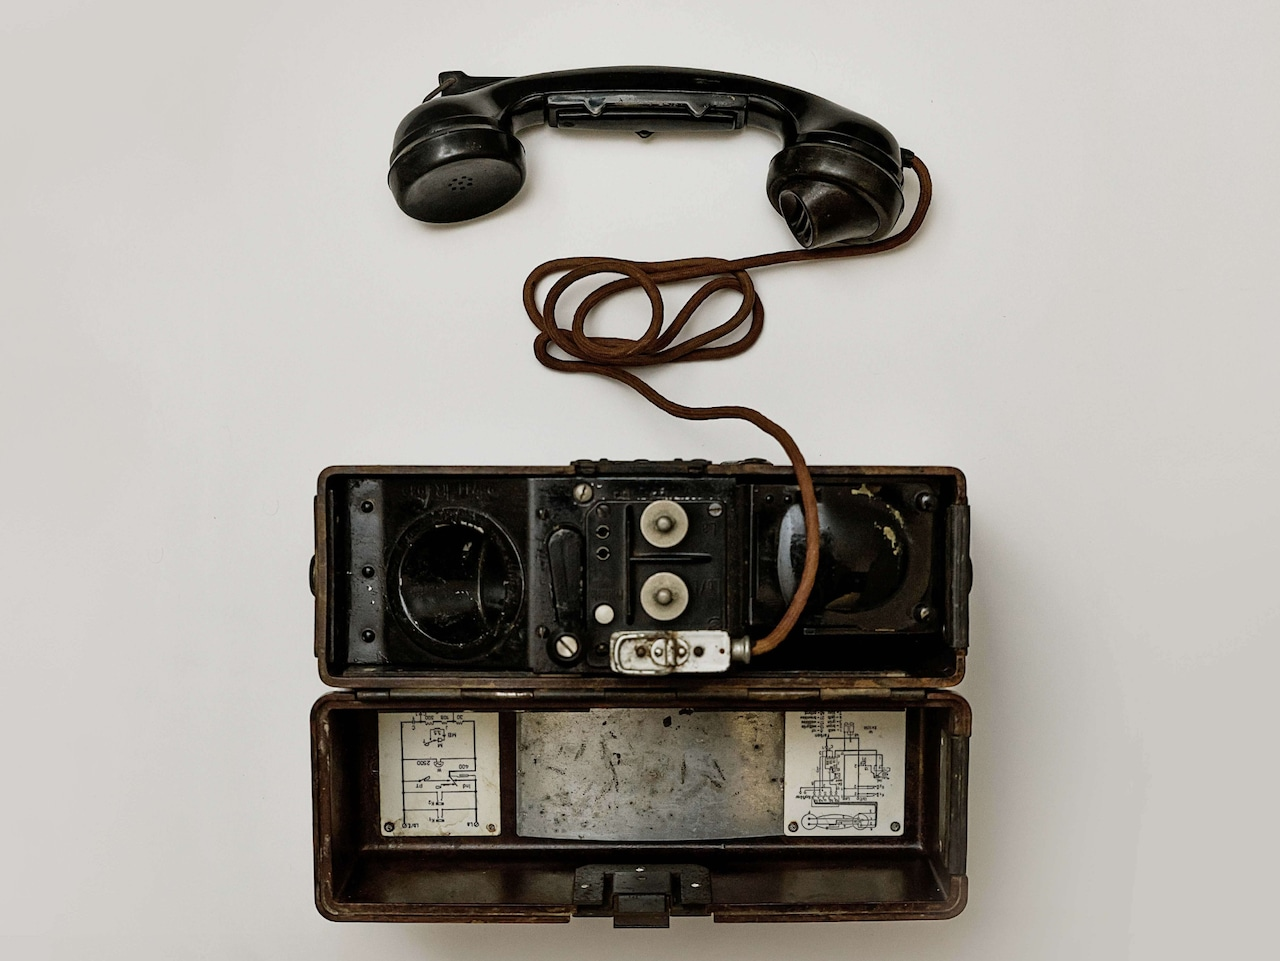 An oldtimer in communication technology: the cable phone. During the 19th century it took decades for a quarter of the US households to own a telephone – the smartphone needed less than five years to achieve the same numbers.